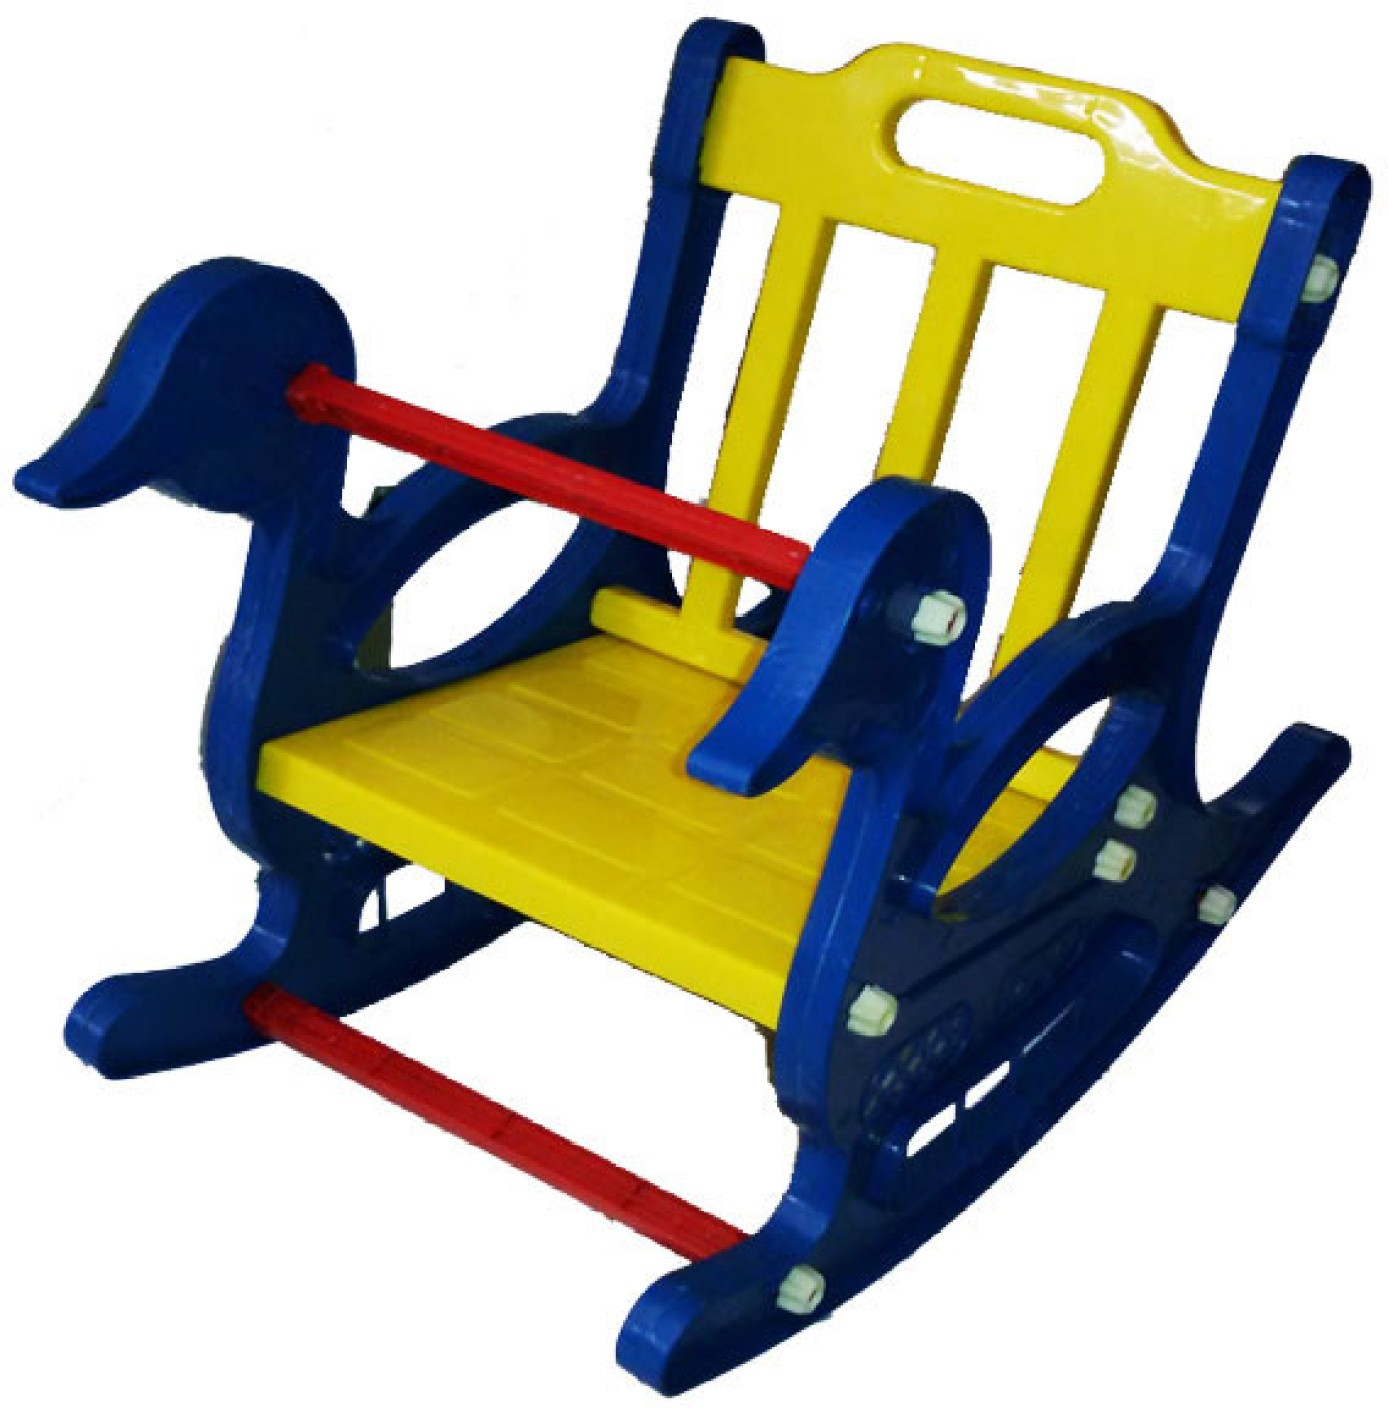 Steel Craft Kids Rocking Chair Buy Baby Care Products in India